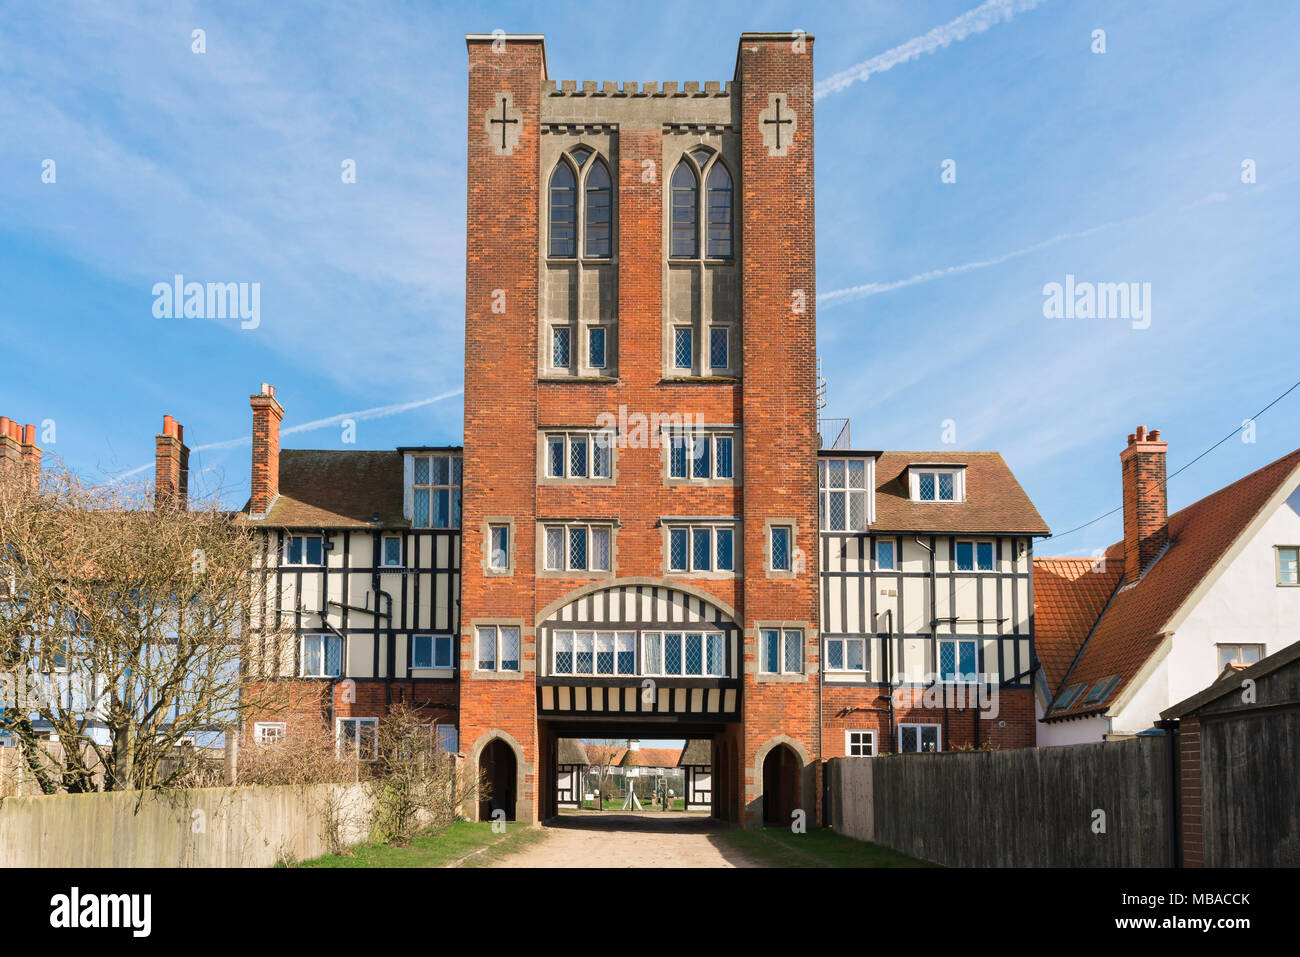 Half Brick Stockfotos & Half Brick Bilder - Alamy